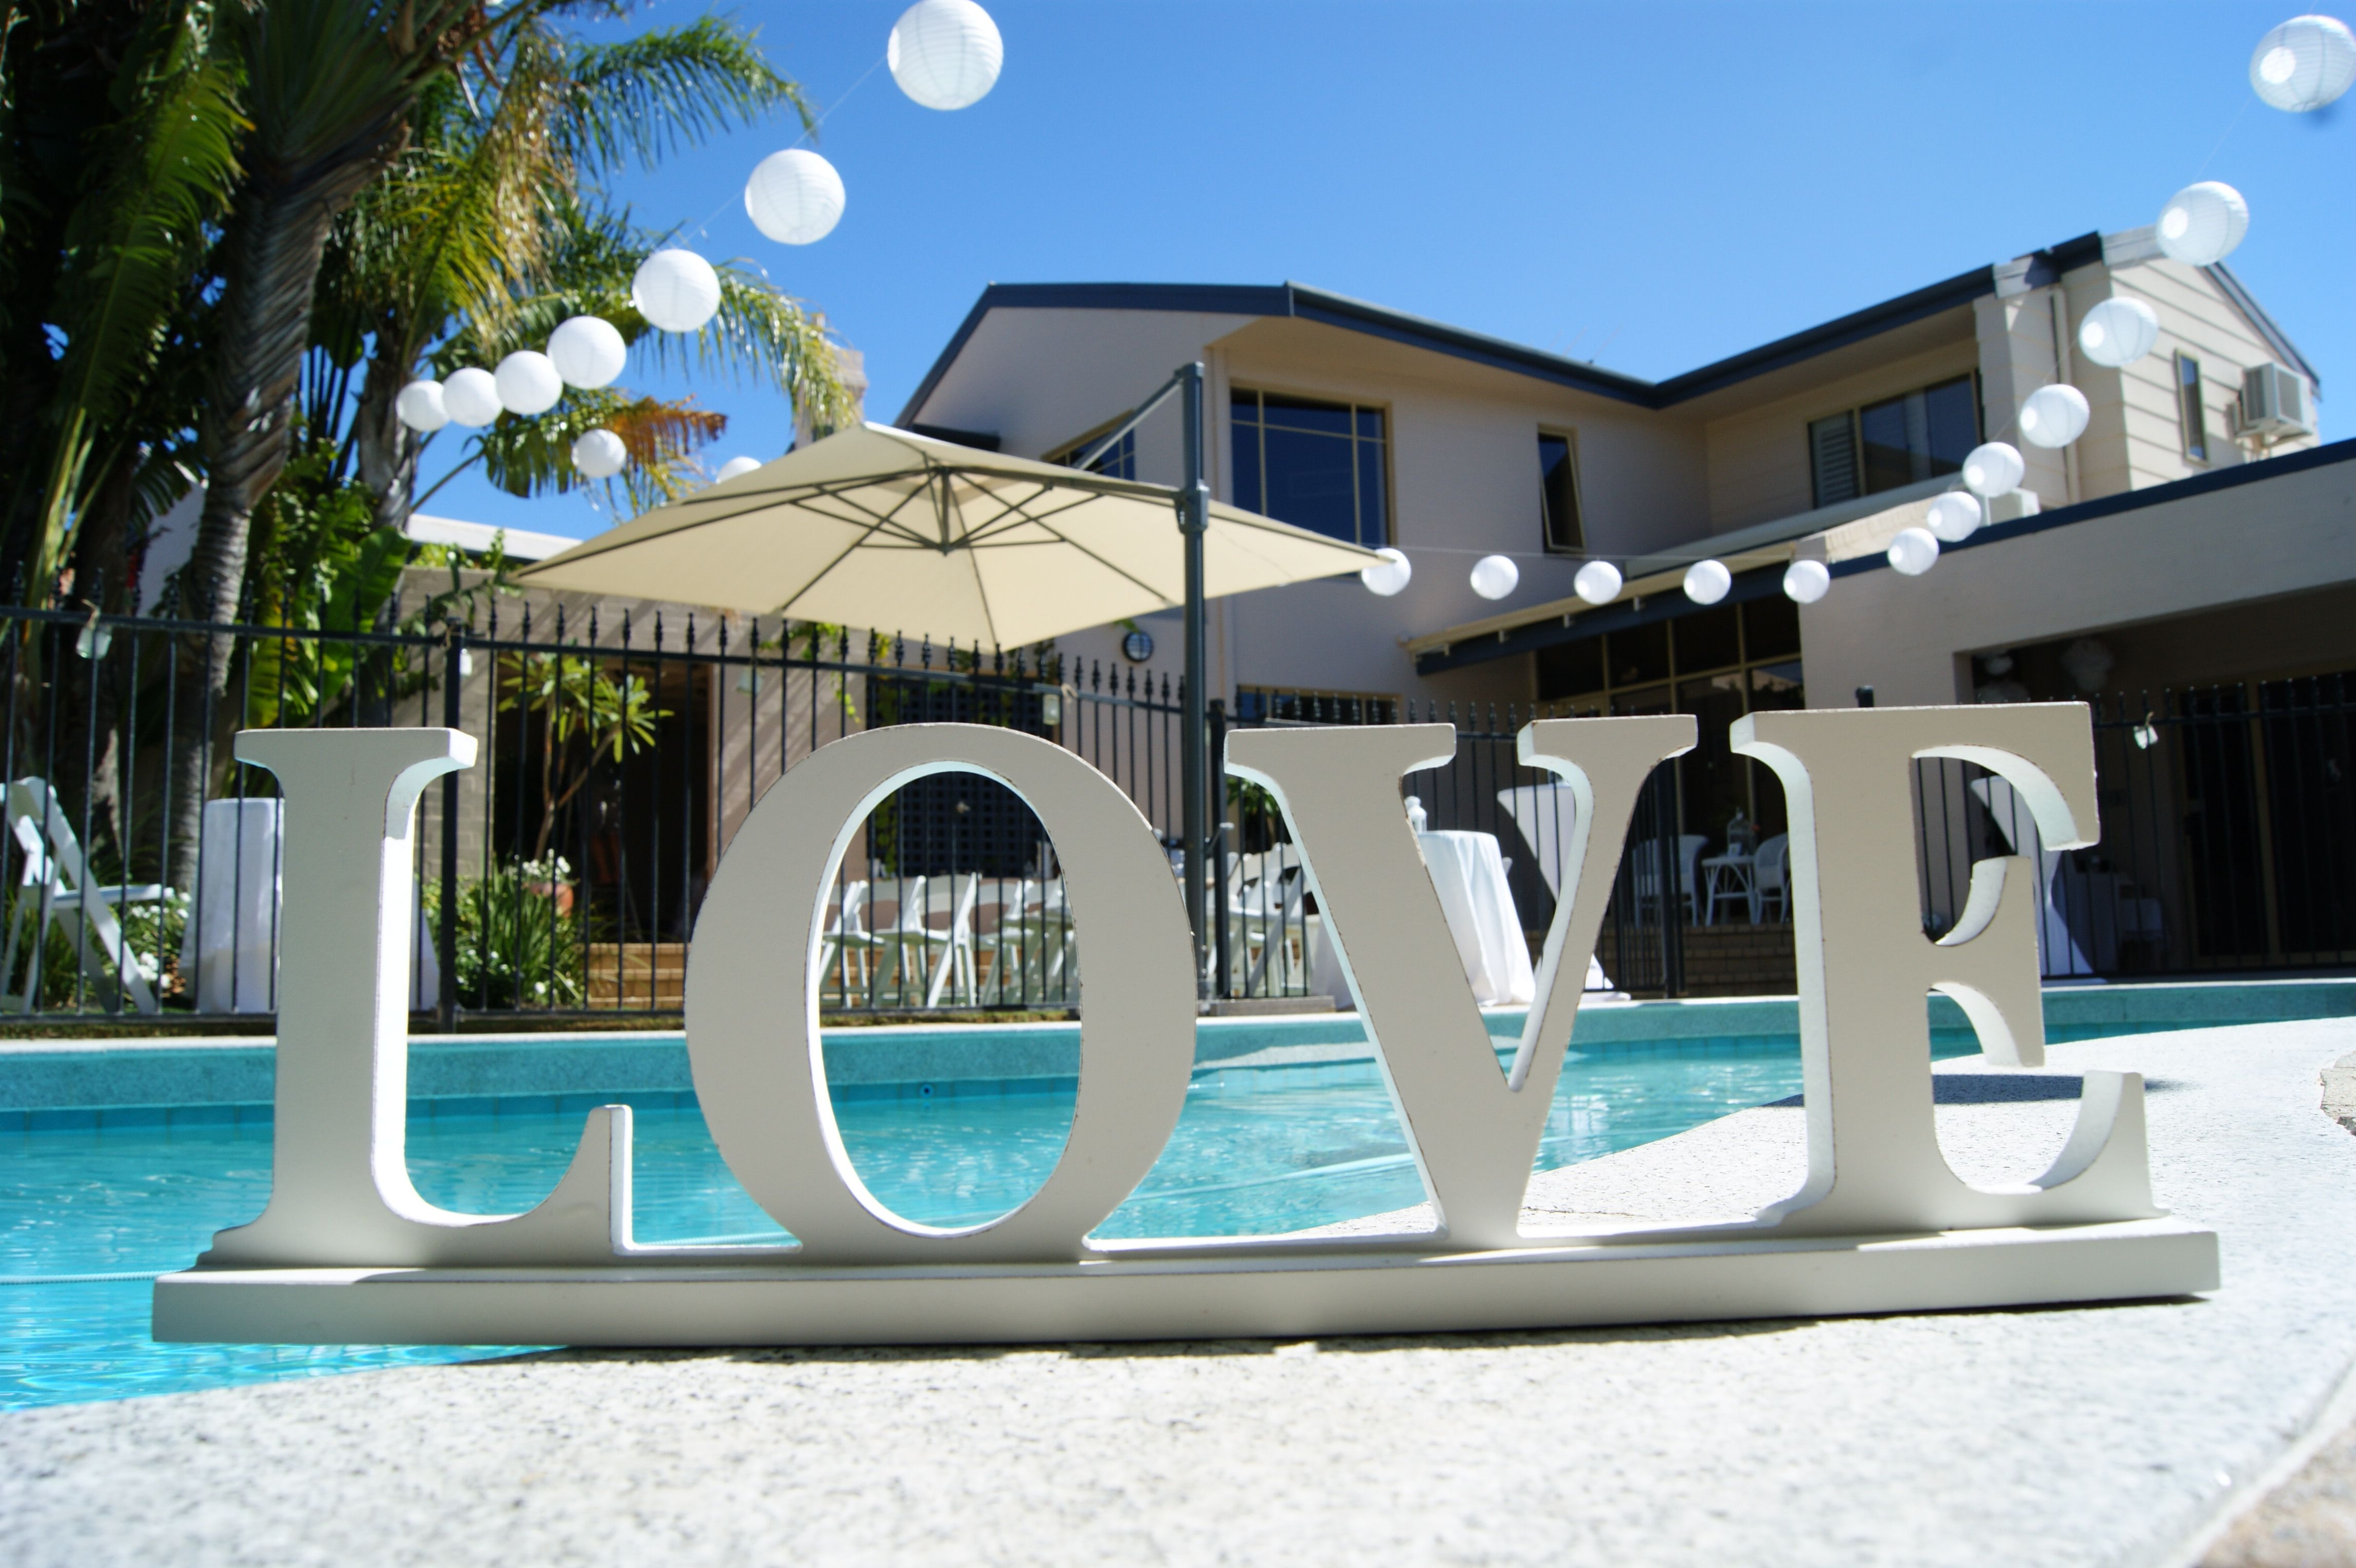 backyard wedding by the pool domaney loves jackson 09 02 13 xx